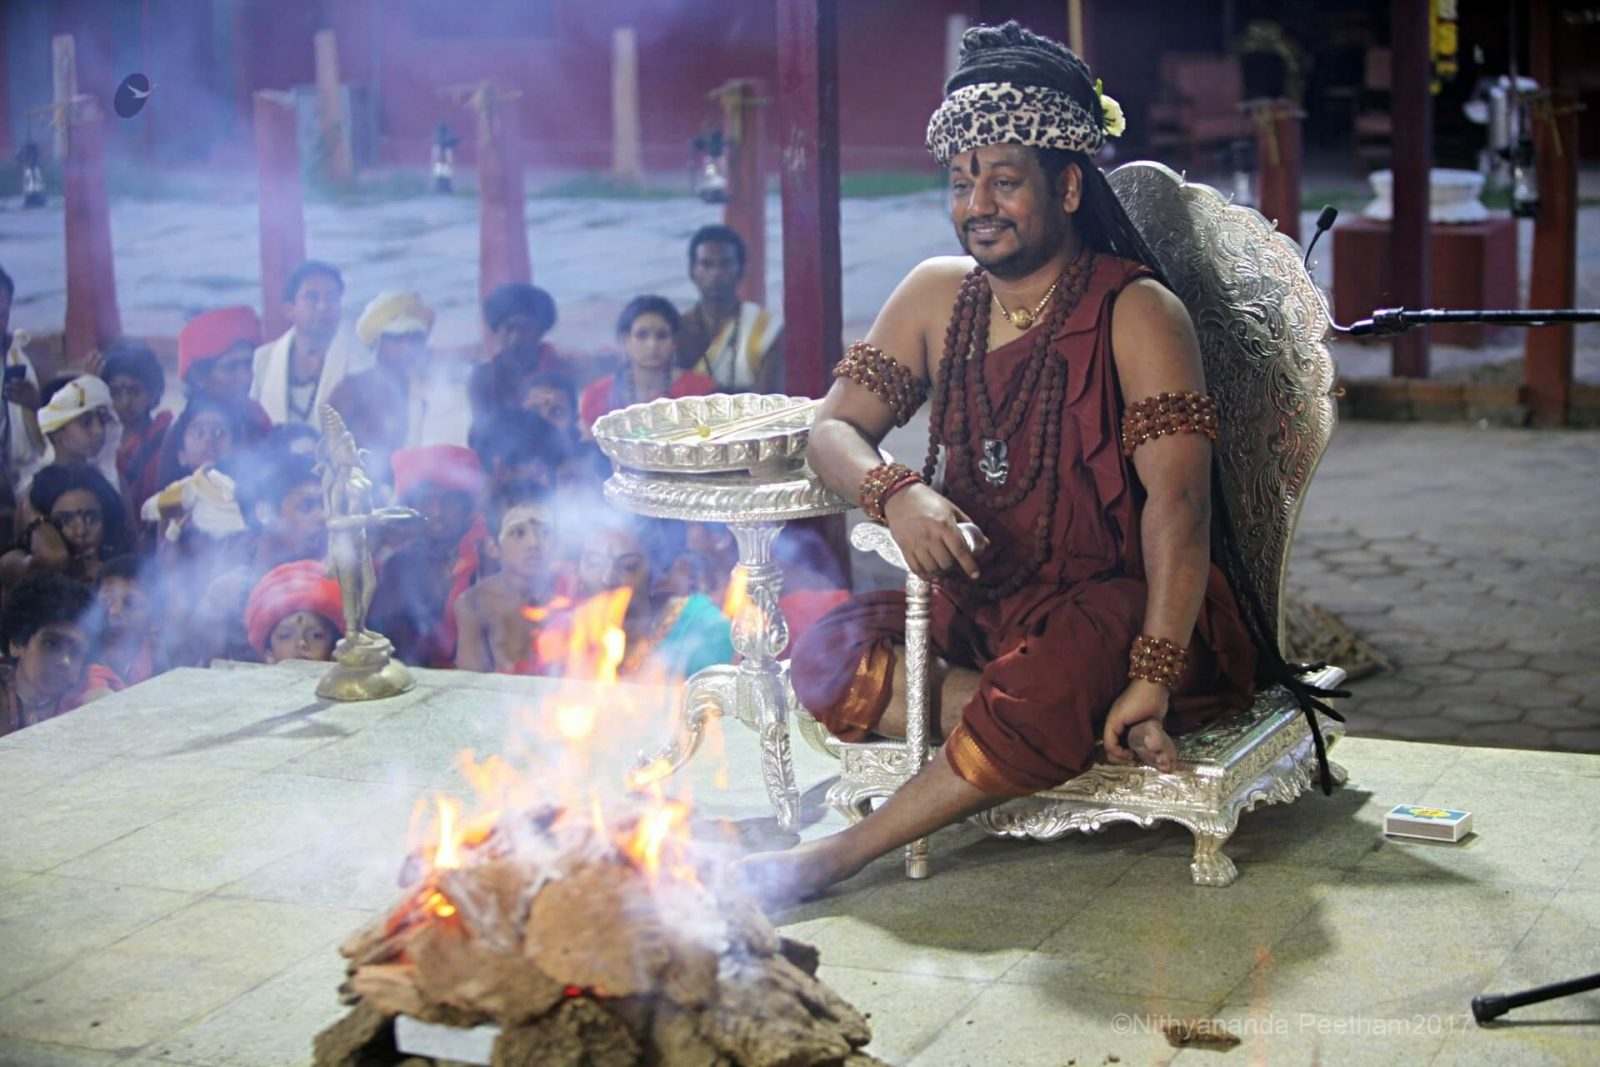 Benefits of Haritaki and Aushada made by Paramahamsa Nithyananda include third eye awakening